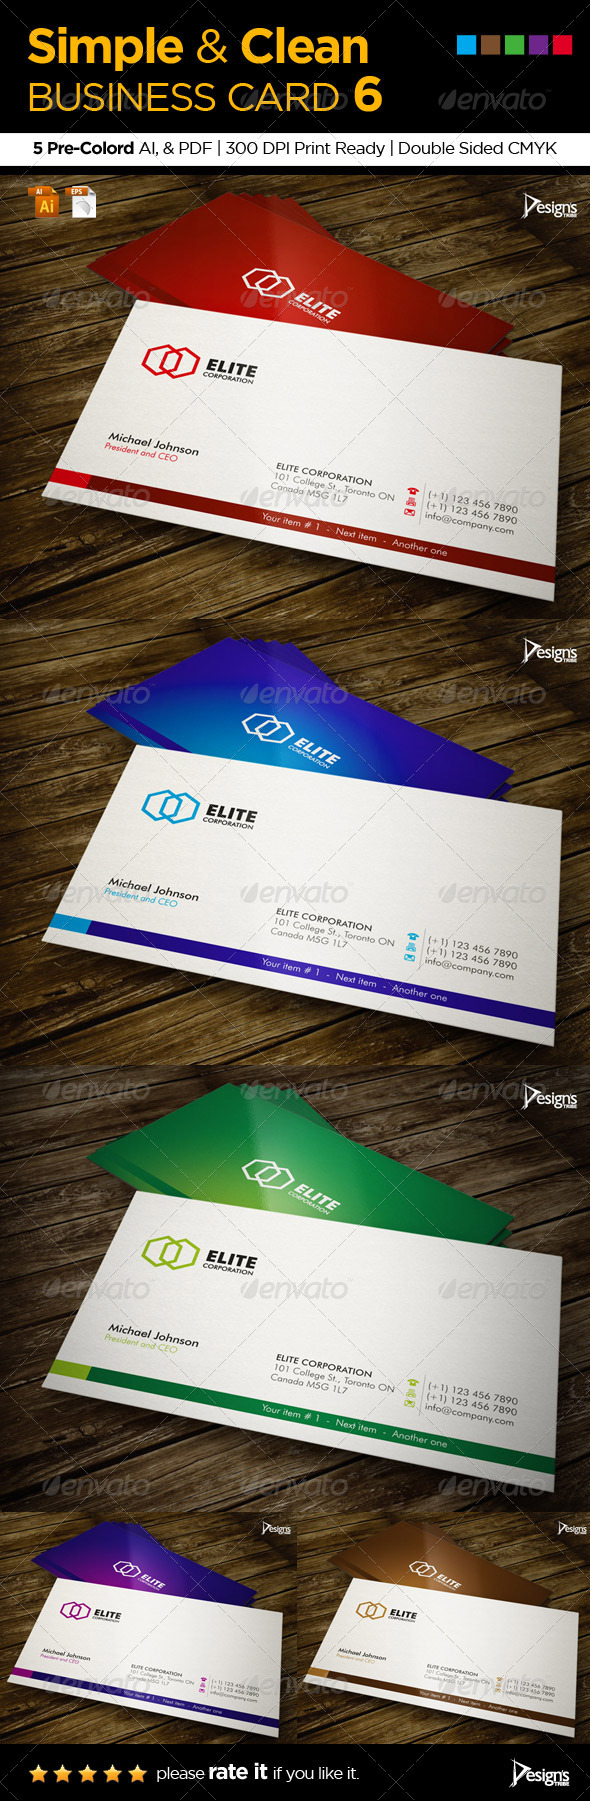 GraphicRiver Simple and Clean Business Card 6 5542241